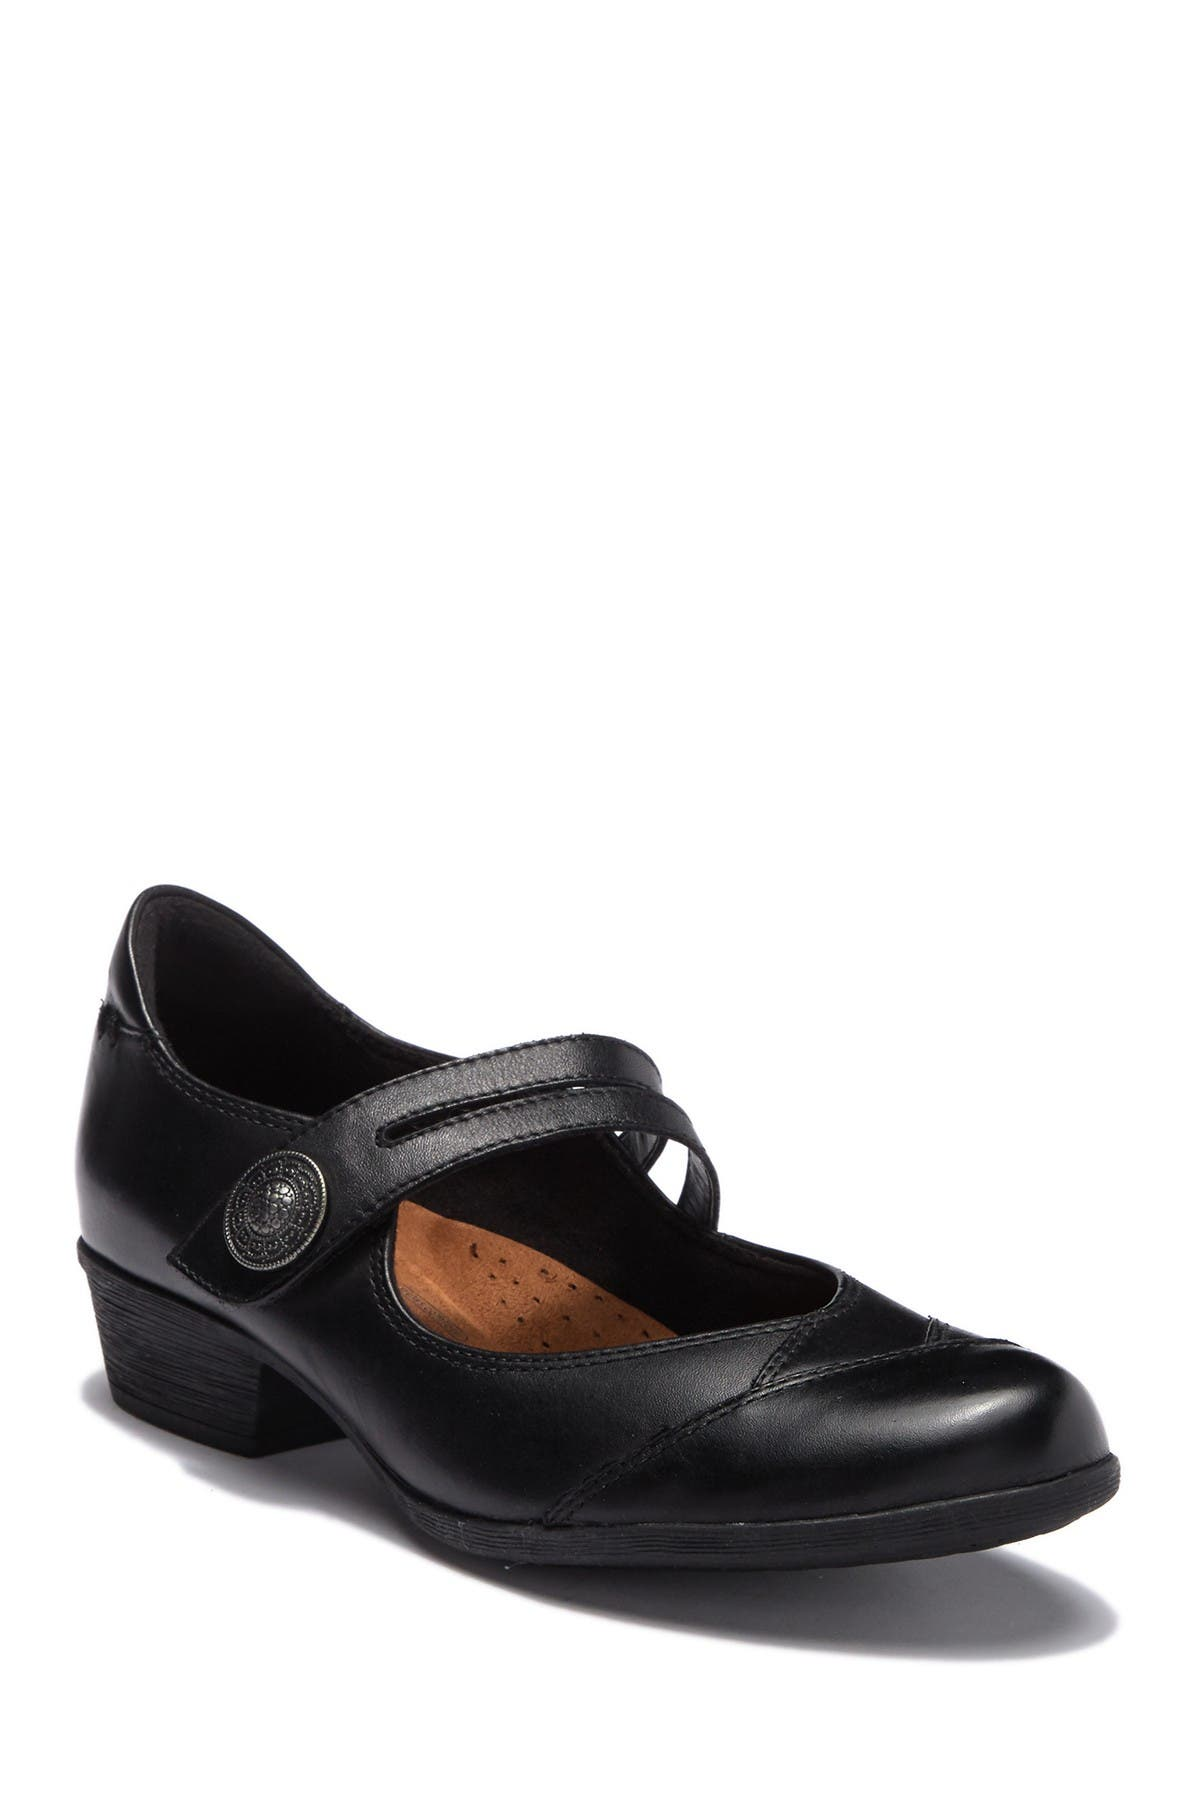 Pick SZ//Color. Rockport Womens Carly Asym Mary Jane Flat